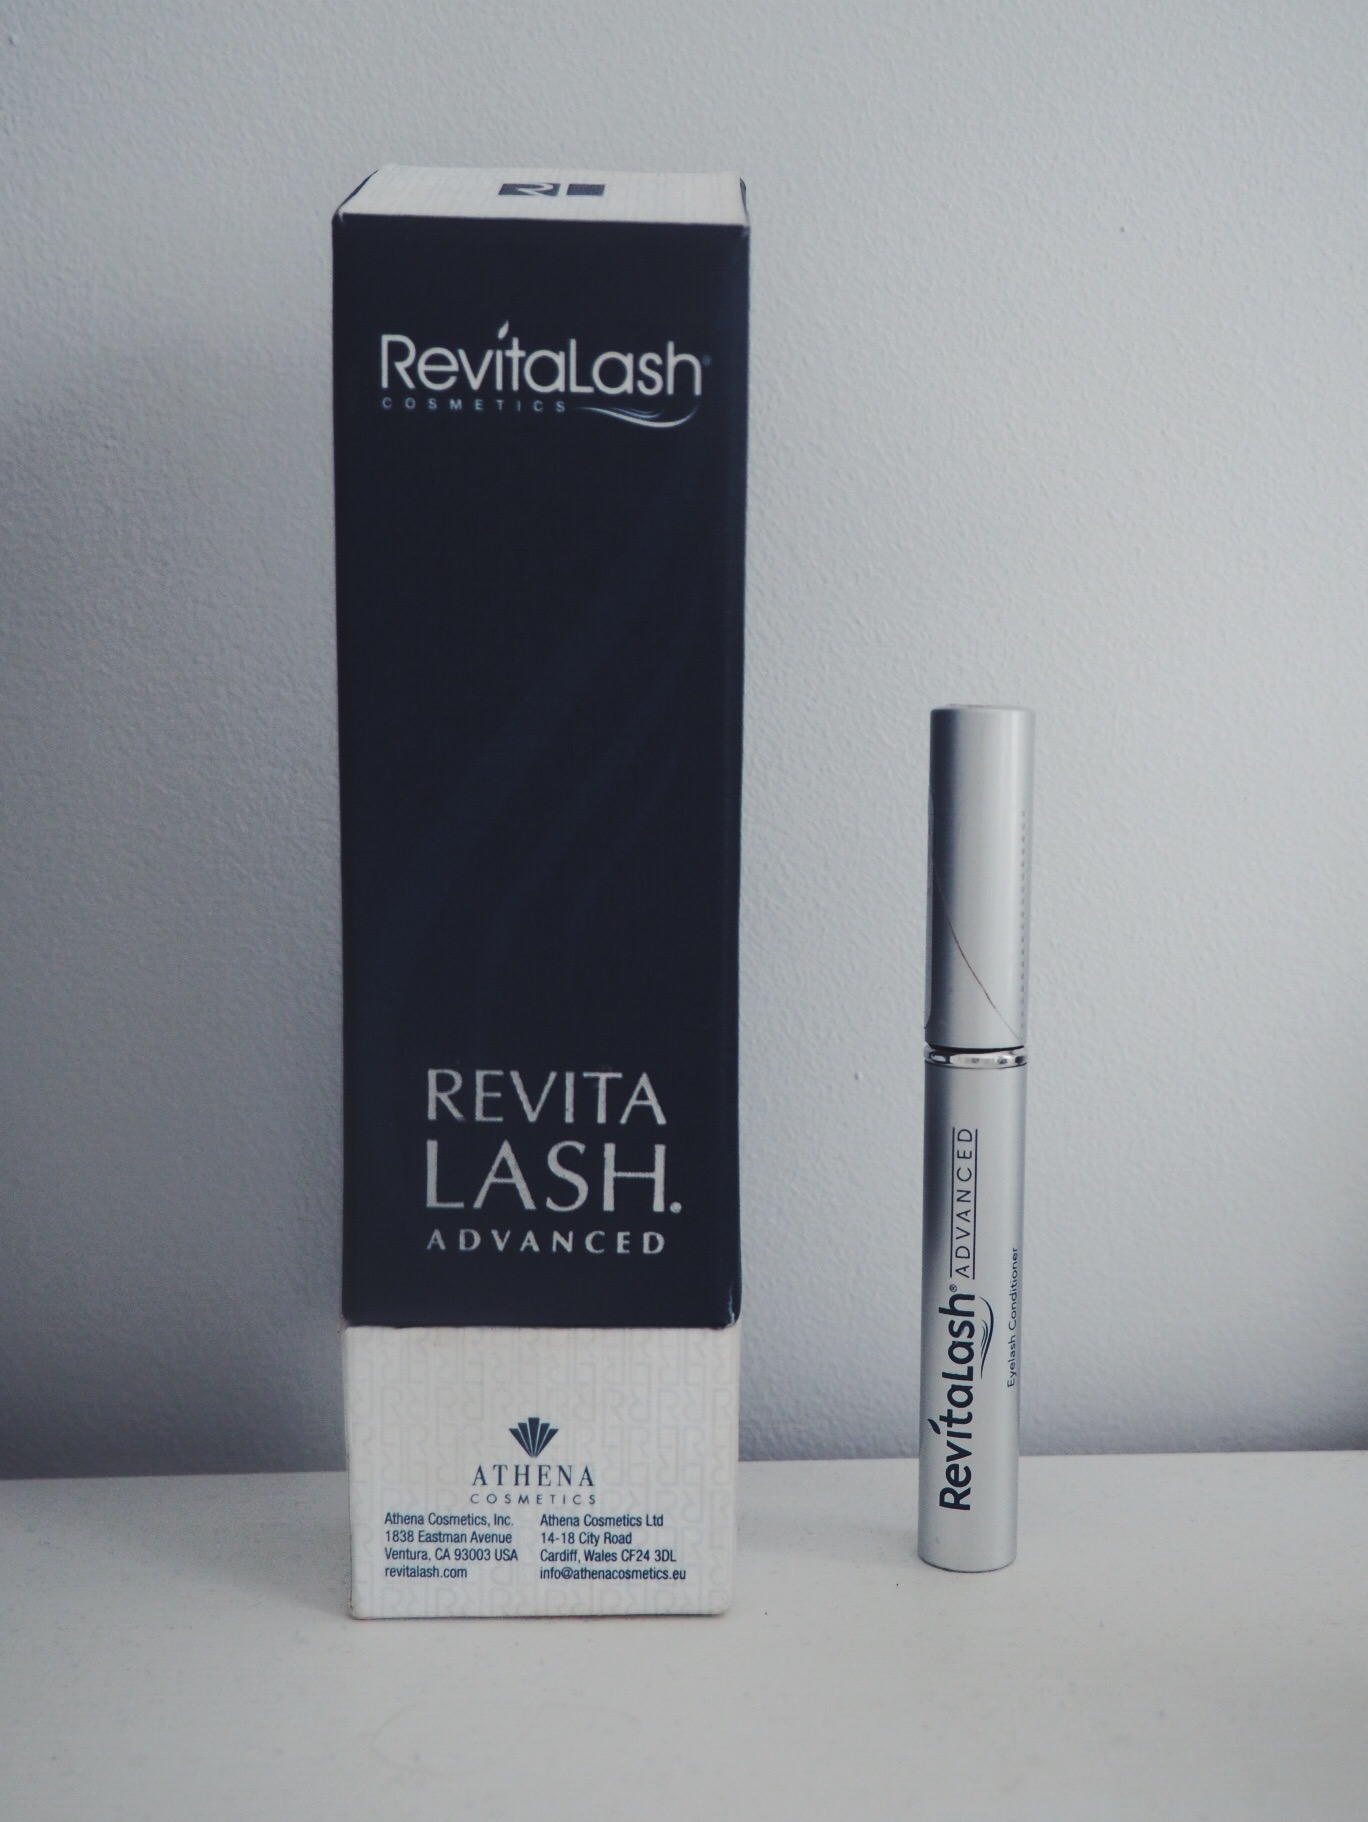 Blue RevitaLash box with product standing next to it